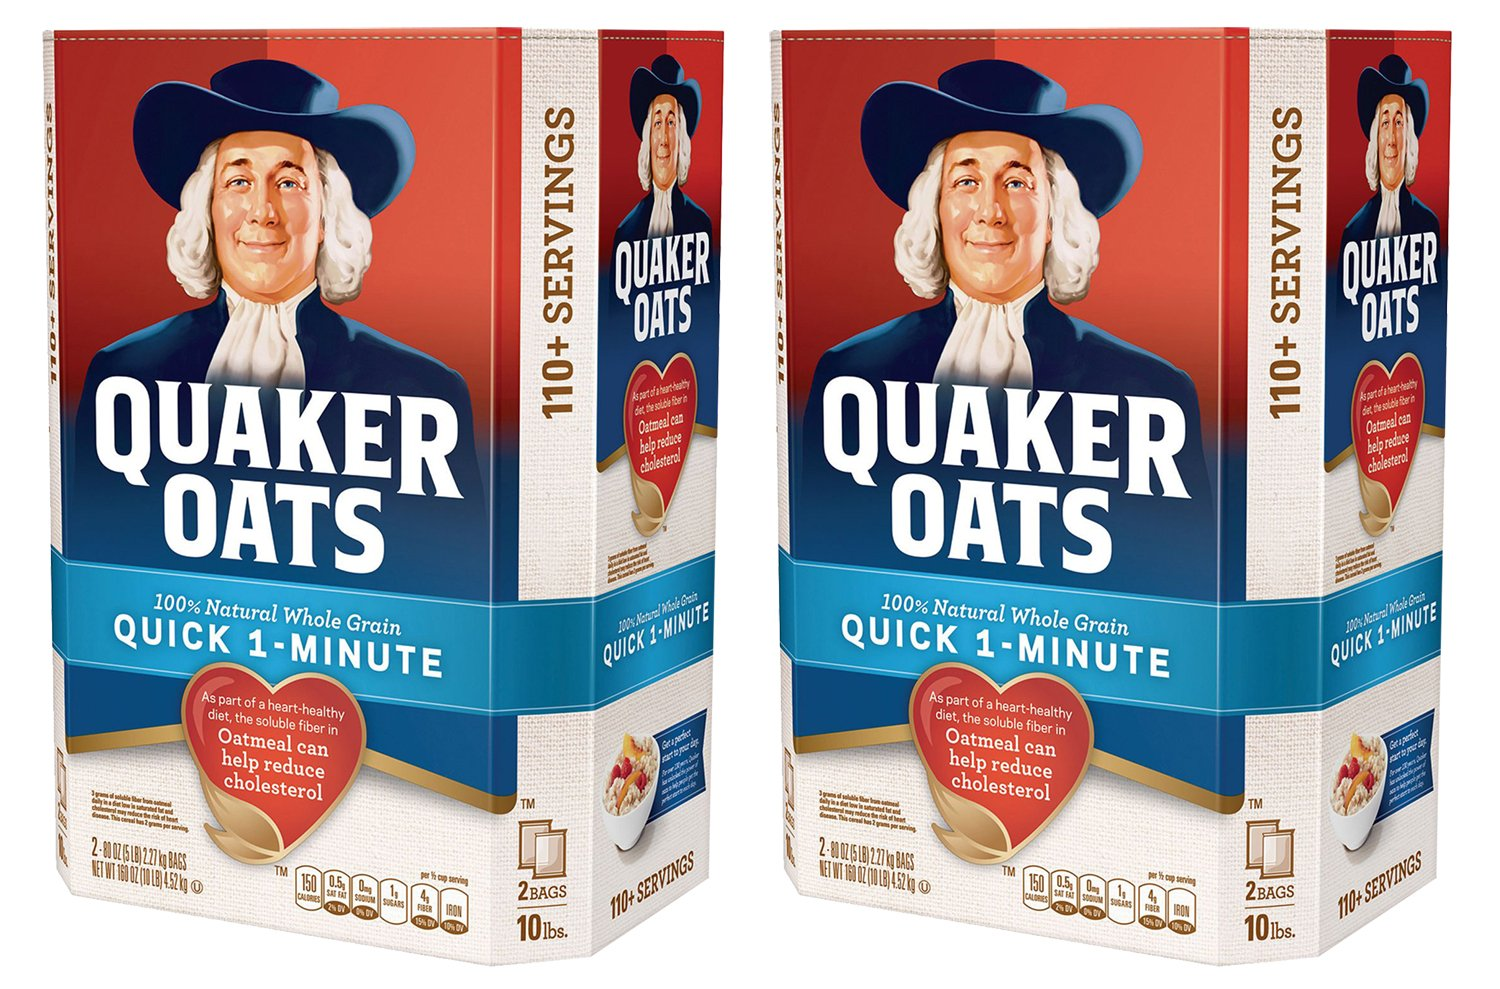 Quaker Oats 100% Whole Grain Quick 1-Minute Oatmeal Instant Oatmeal - 10 Pounds - Pack f 2 by Quaker